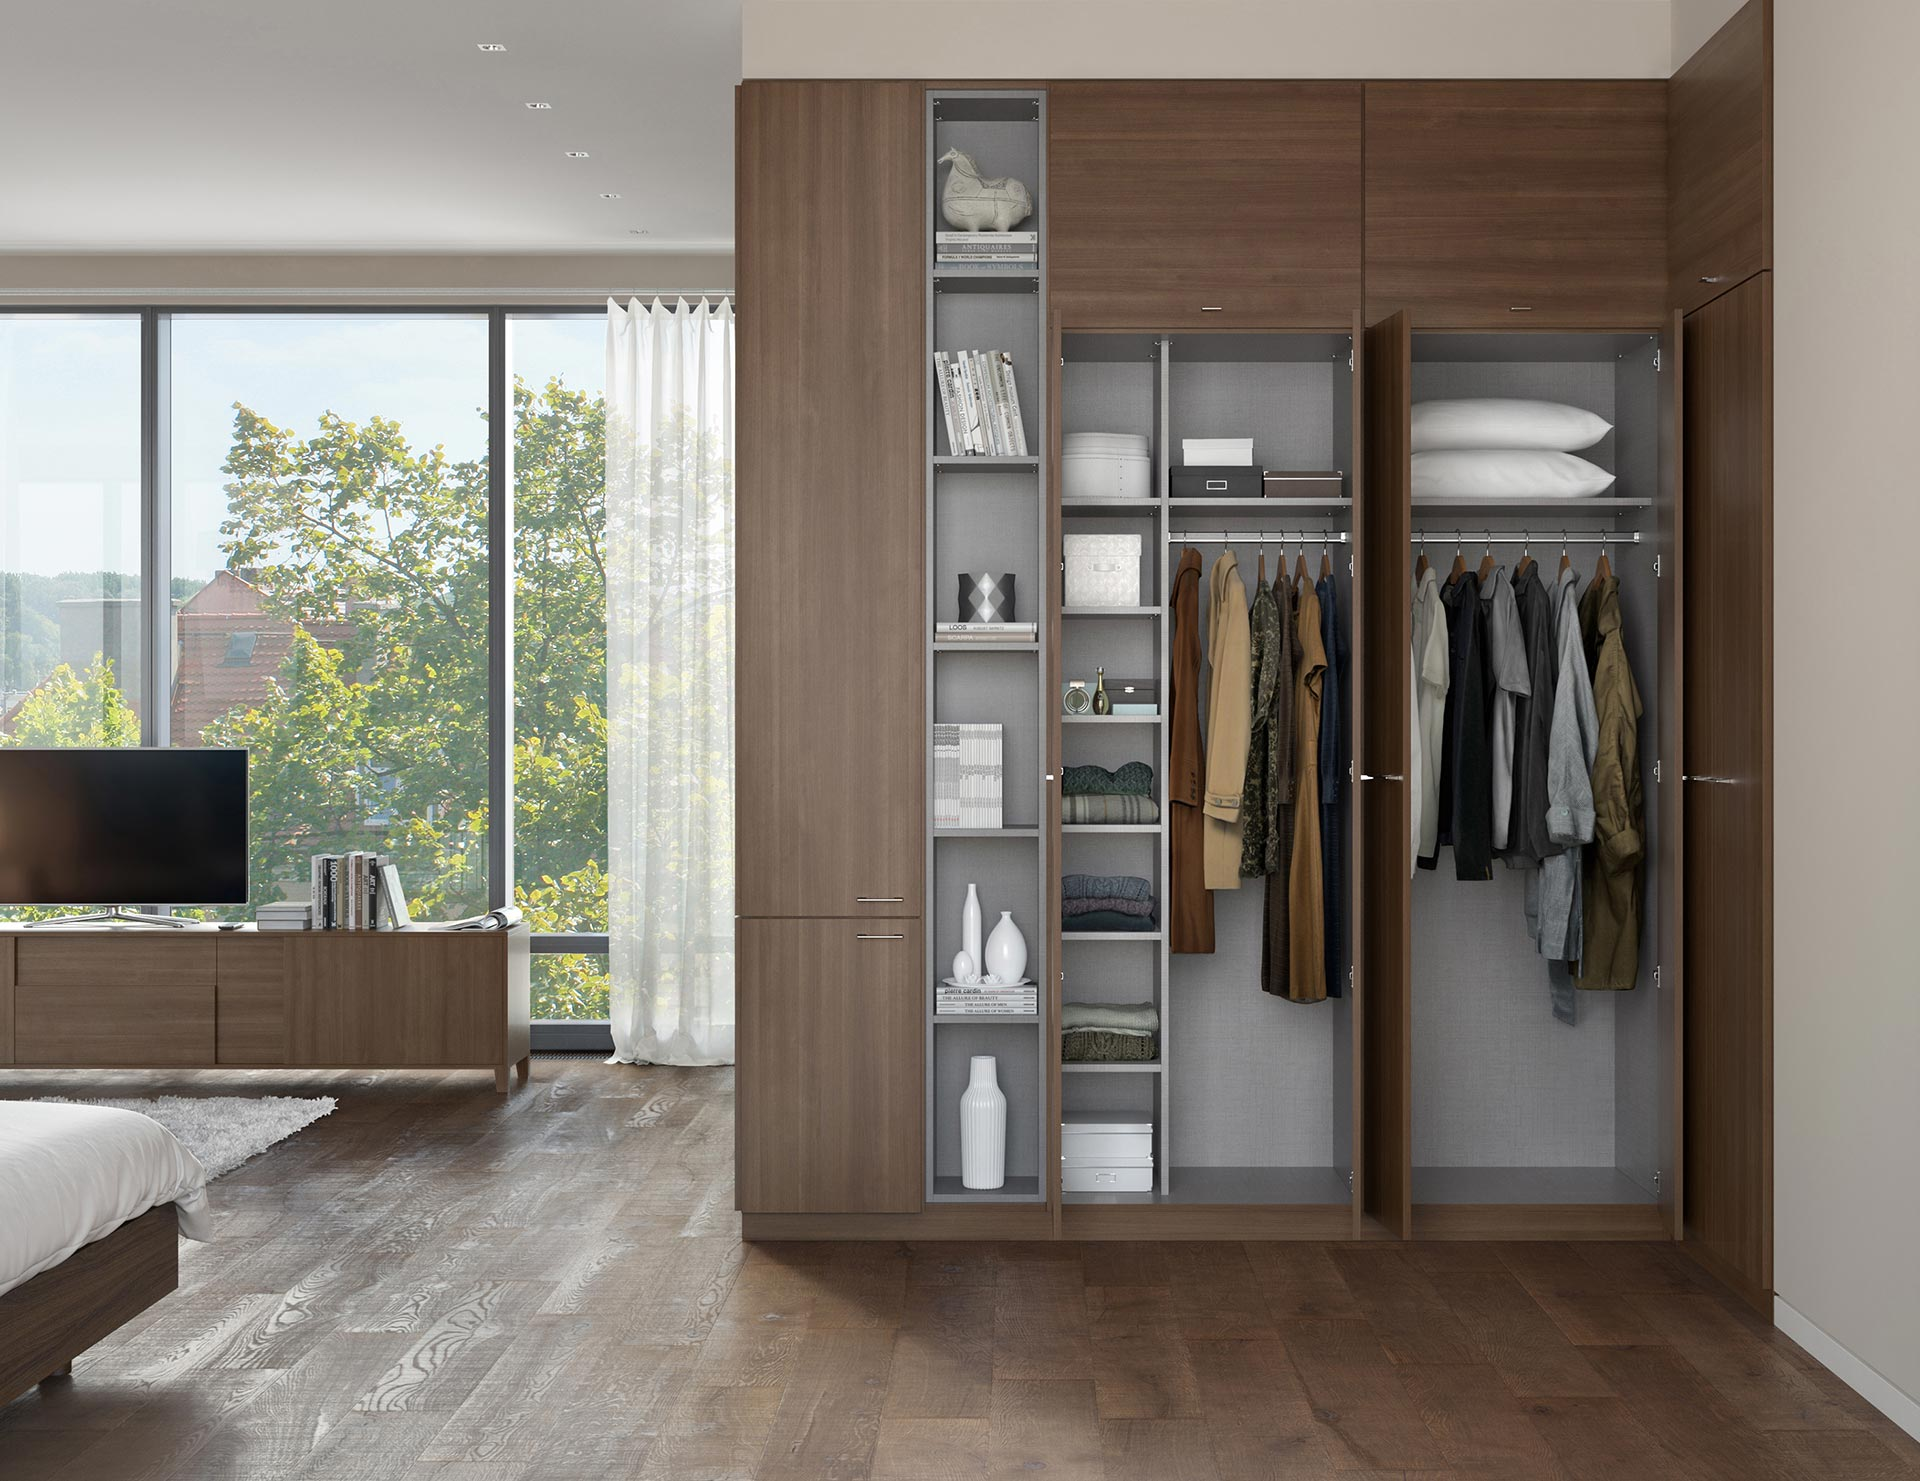 California Closets - Soho Custom Built in Wardrobe Storage System